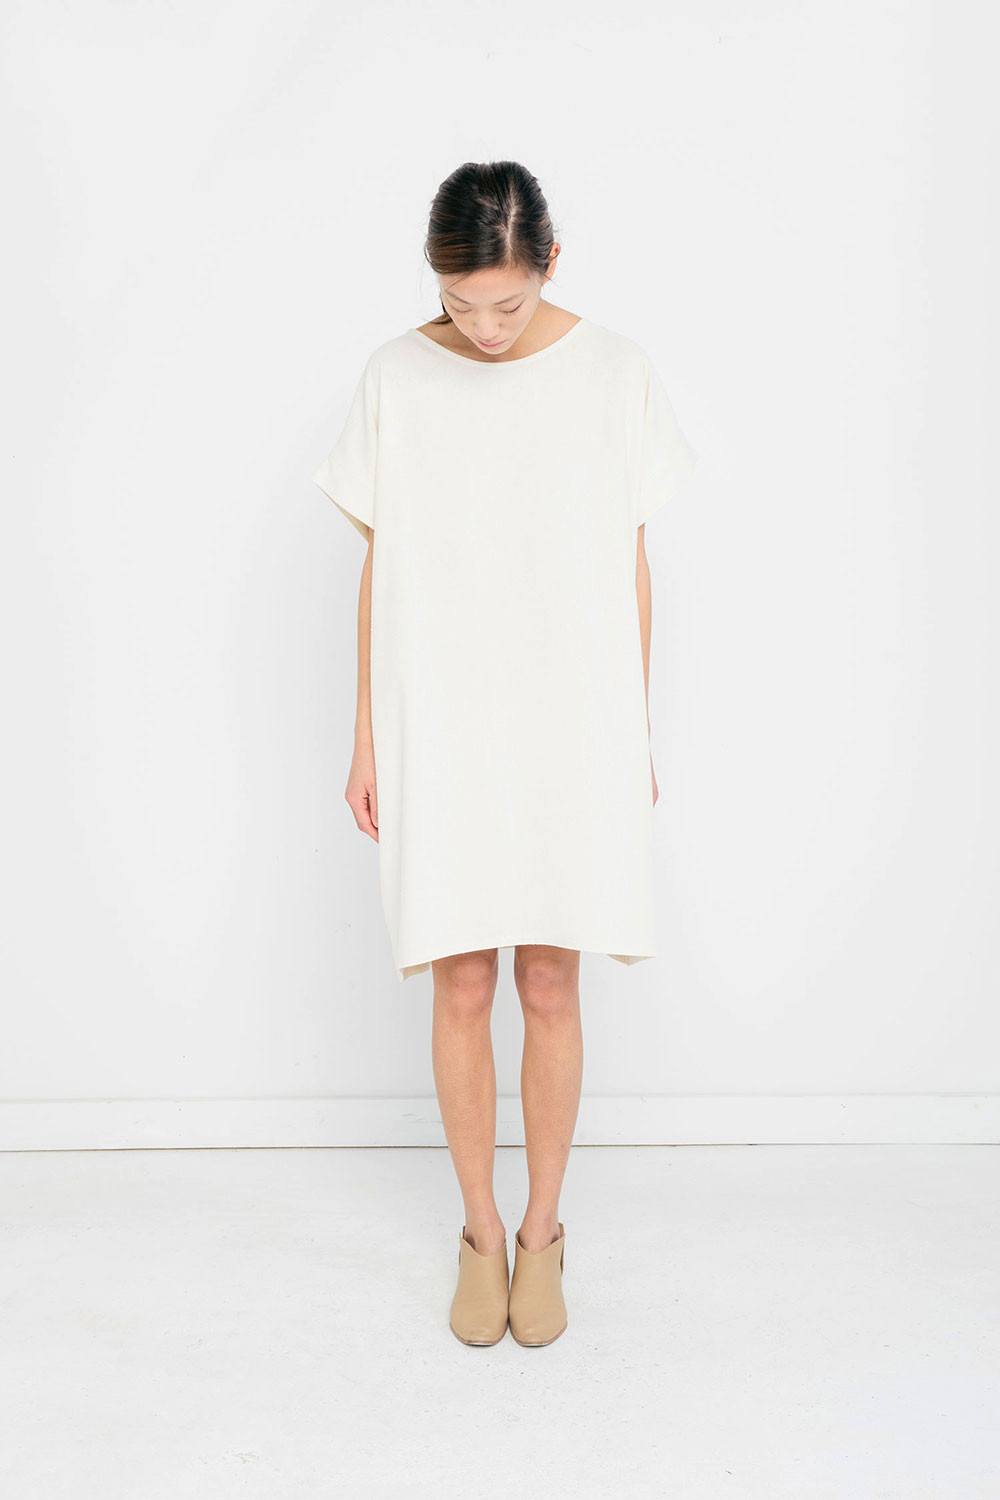 Elizabeth Suzann - Georgia Dress - $215